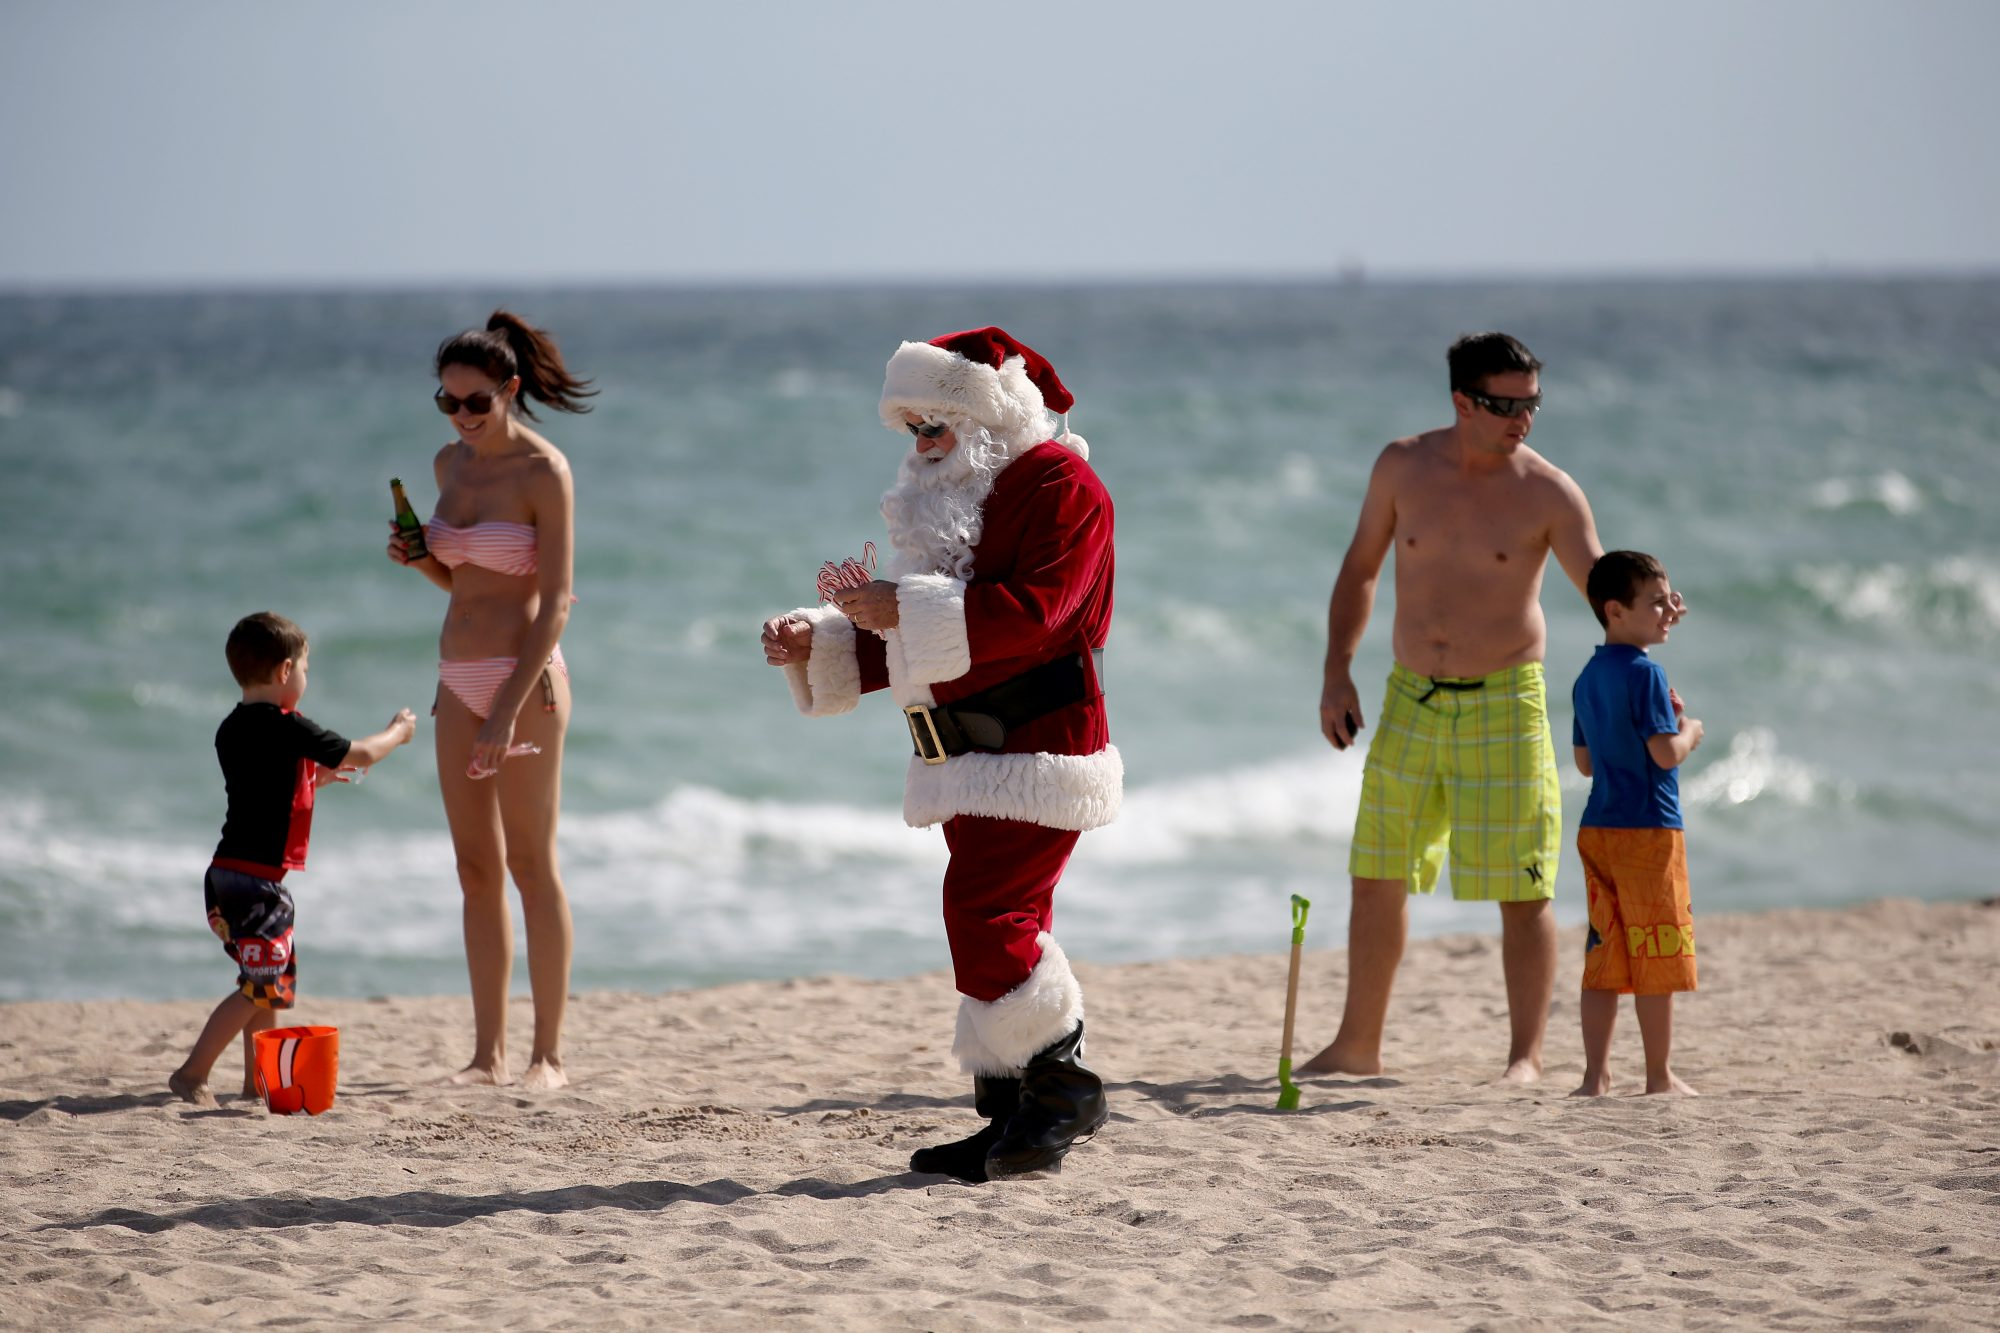 Tom Tapp dressed as Santa Claus walks along the beach passing out candy canes and posing for pictures with beach goers on December 20, 2013 in Fort Lauderdale, Florida.